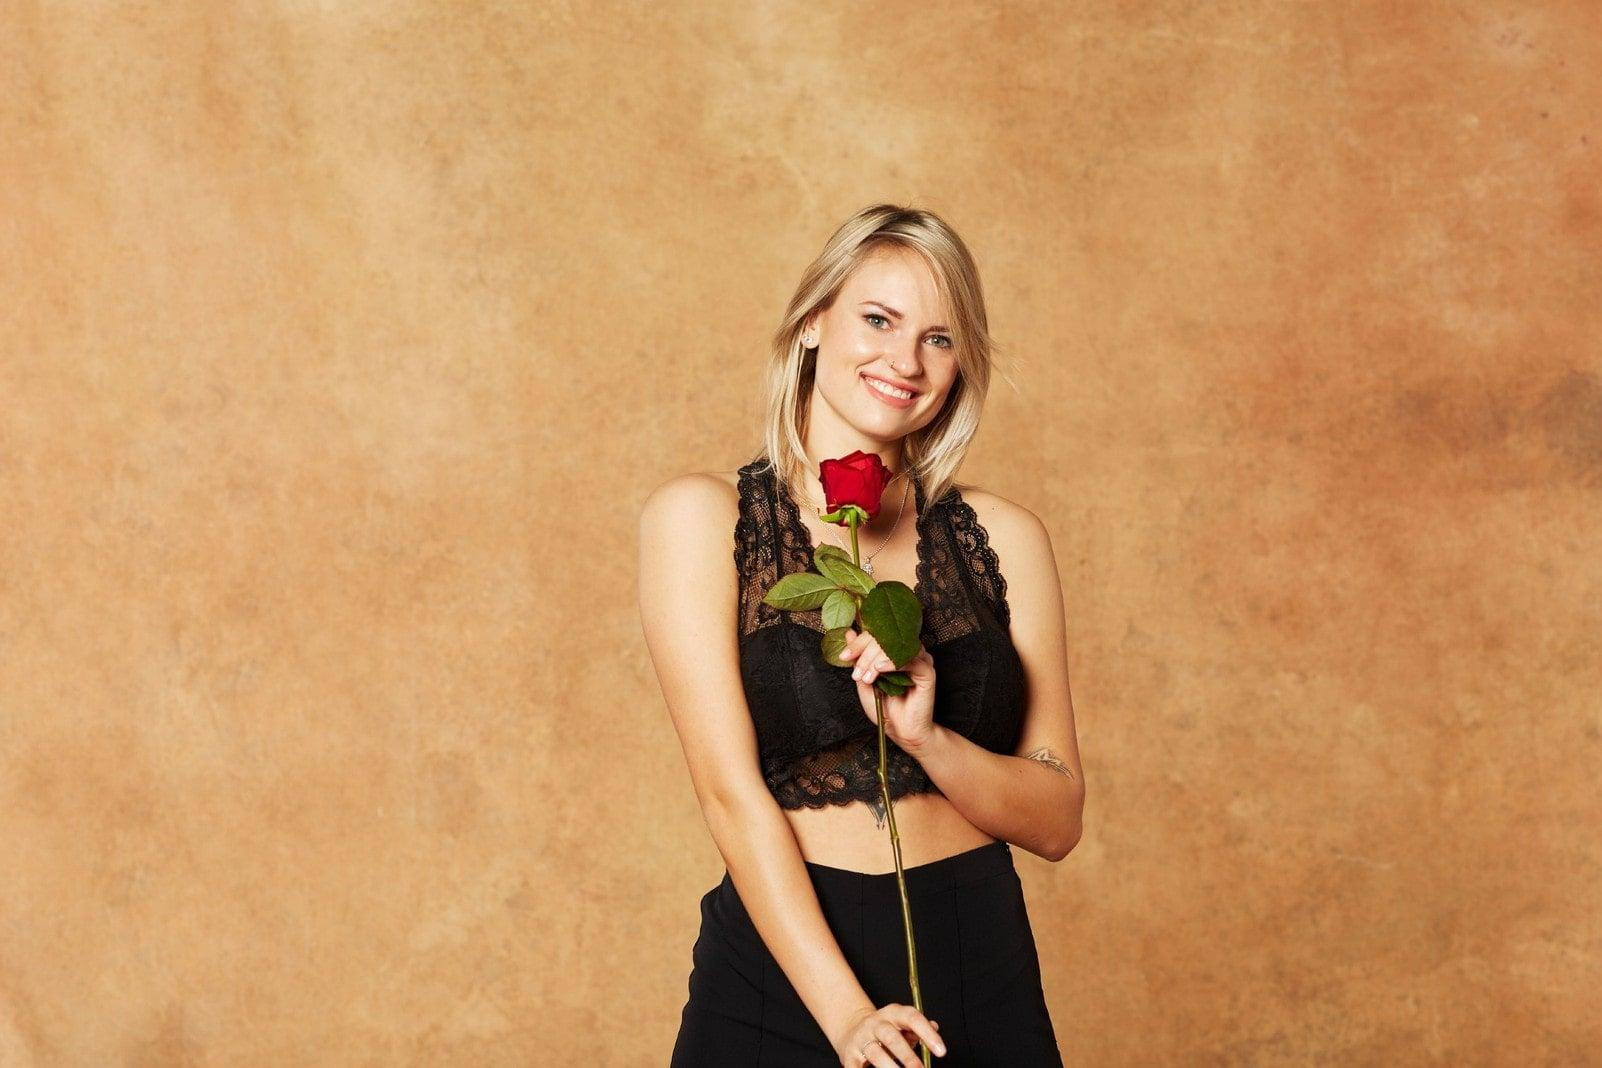 Der Bachelor Kim Rose